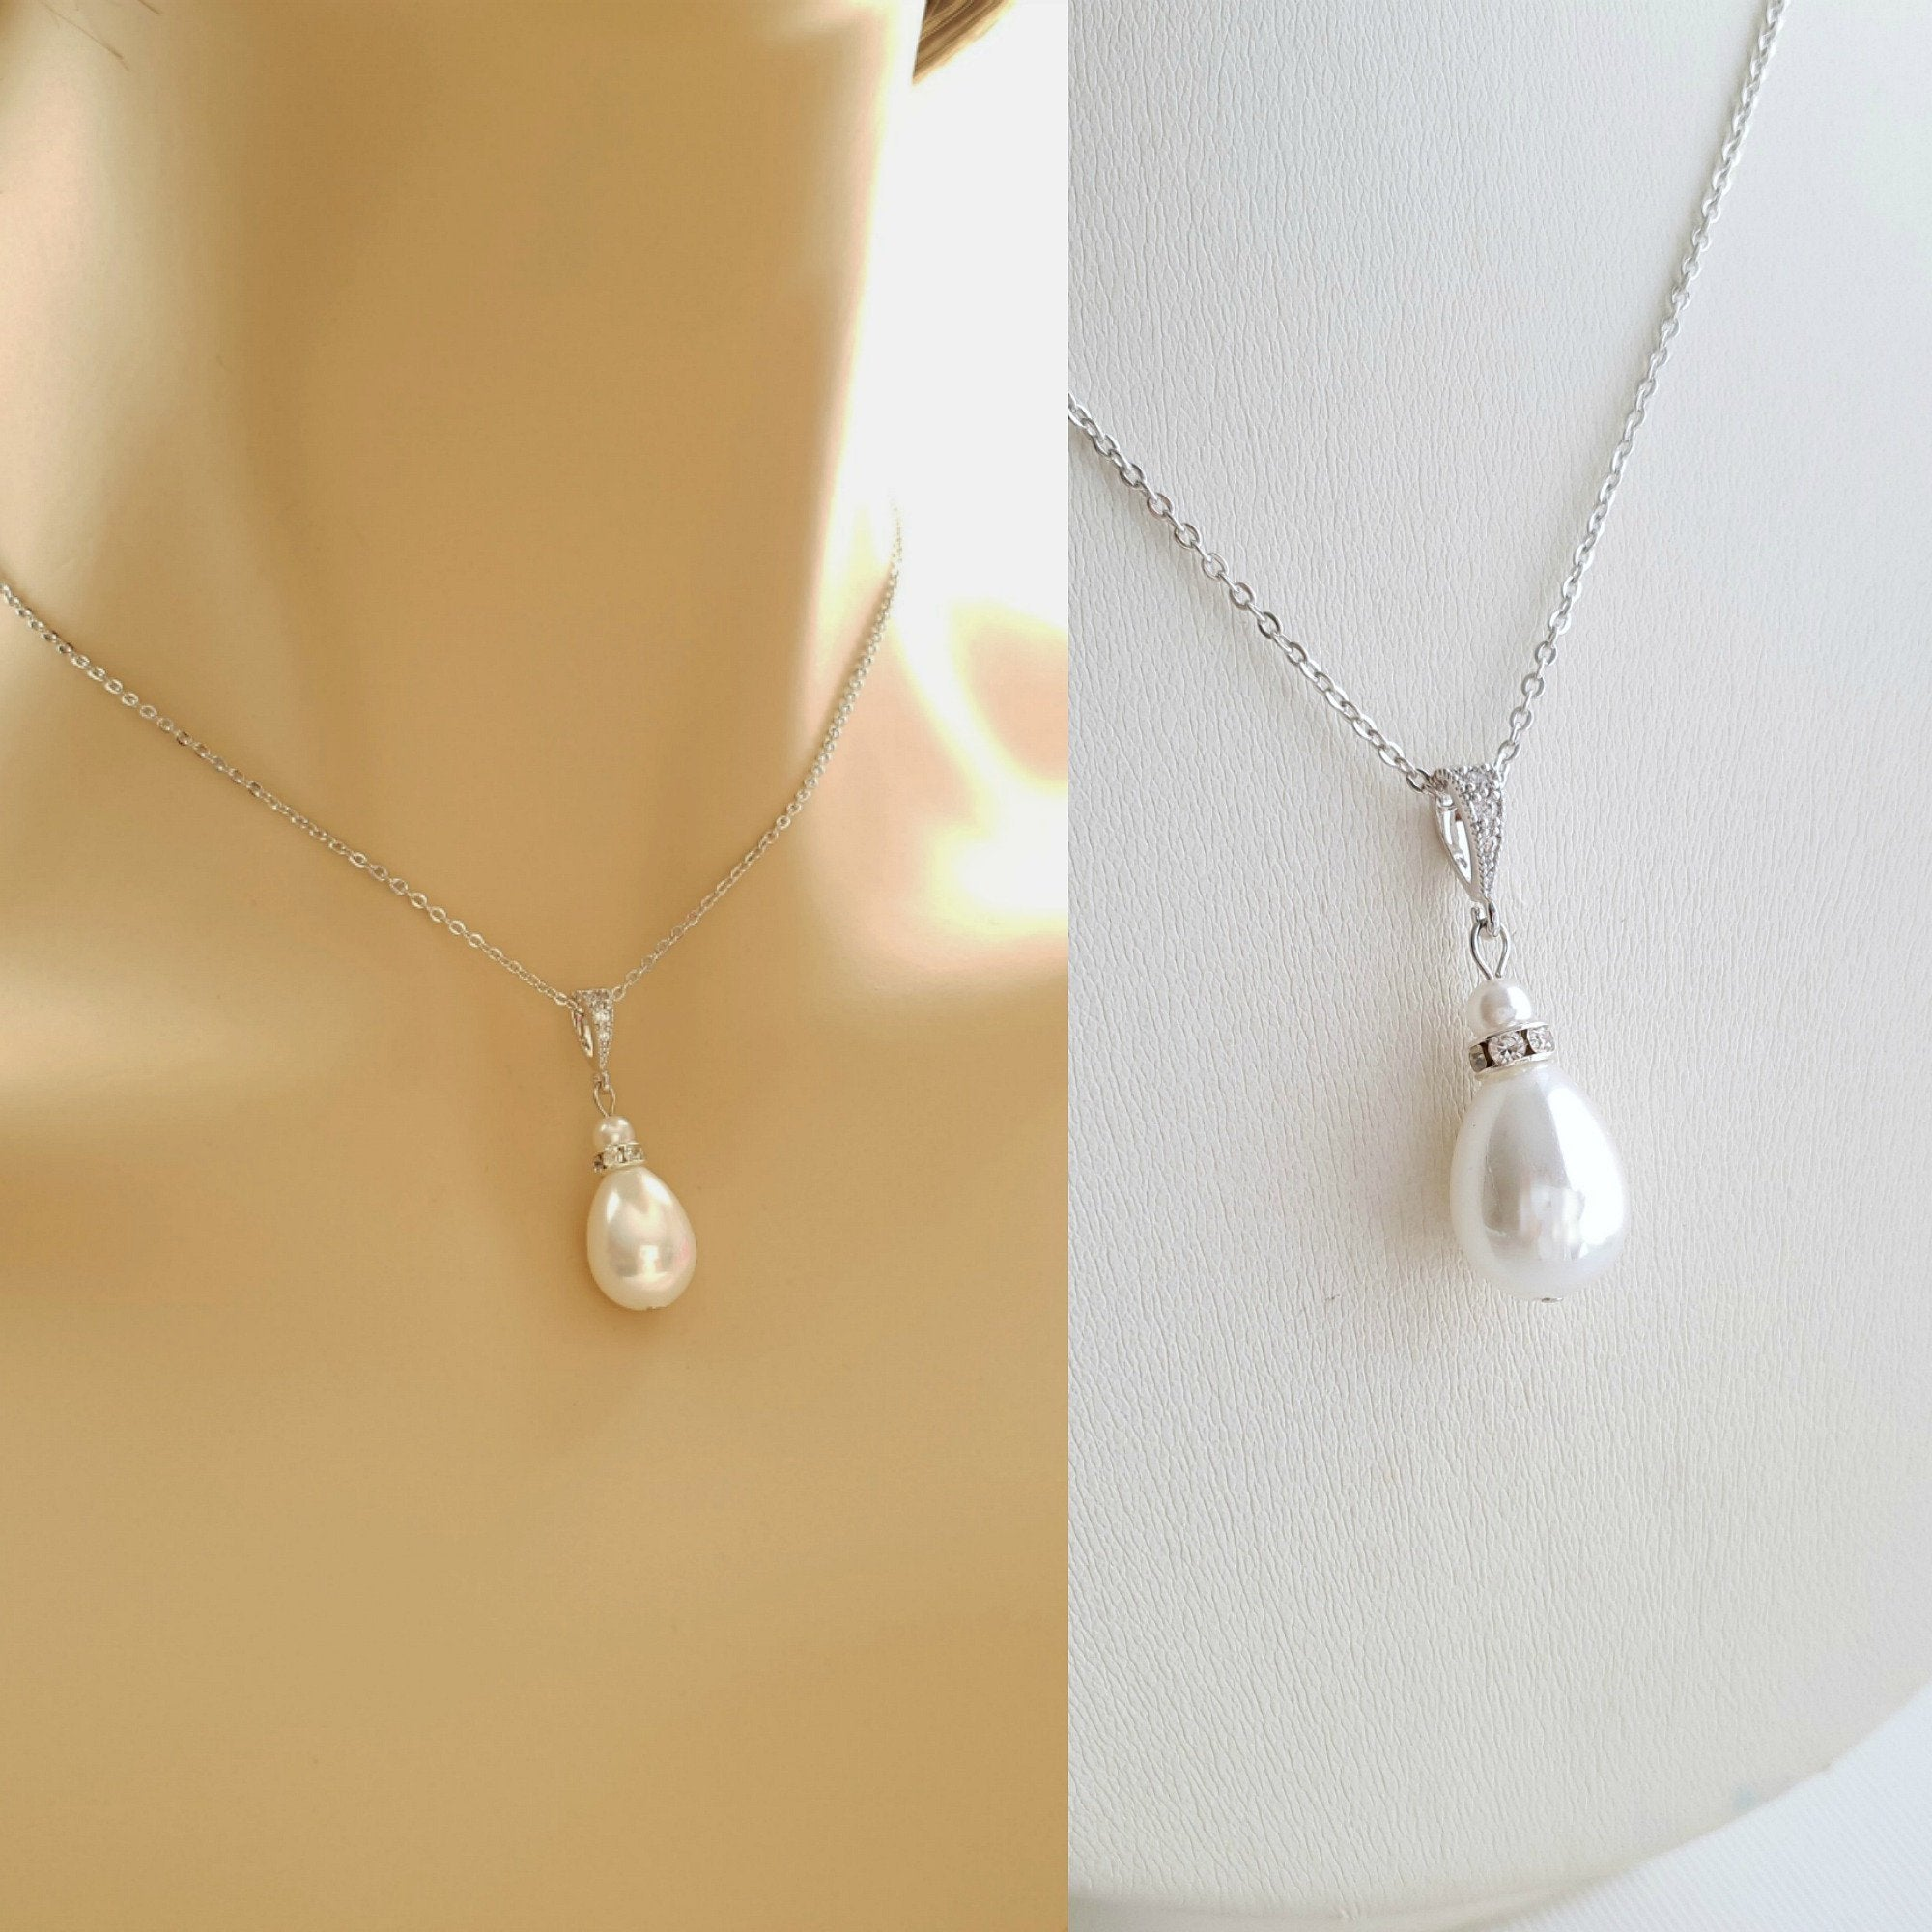 pearl wedding necklace for brides, bridesmaids, weddings- Poetry Designs